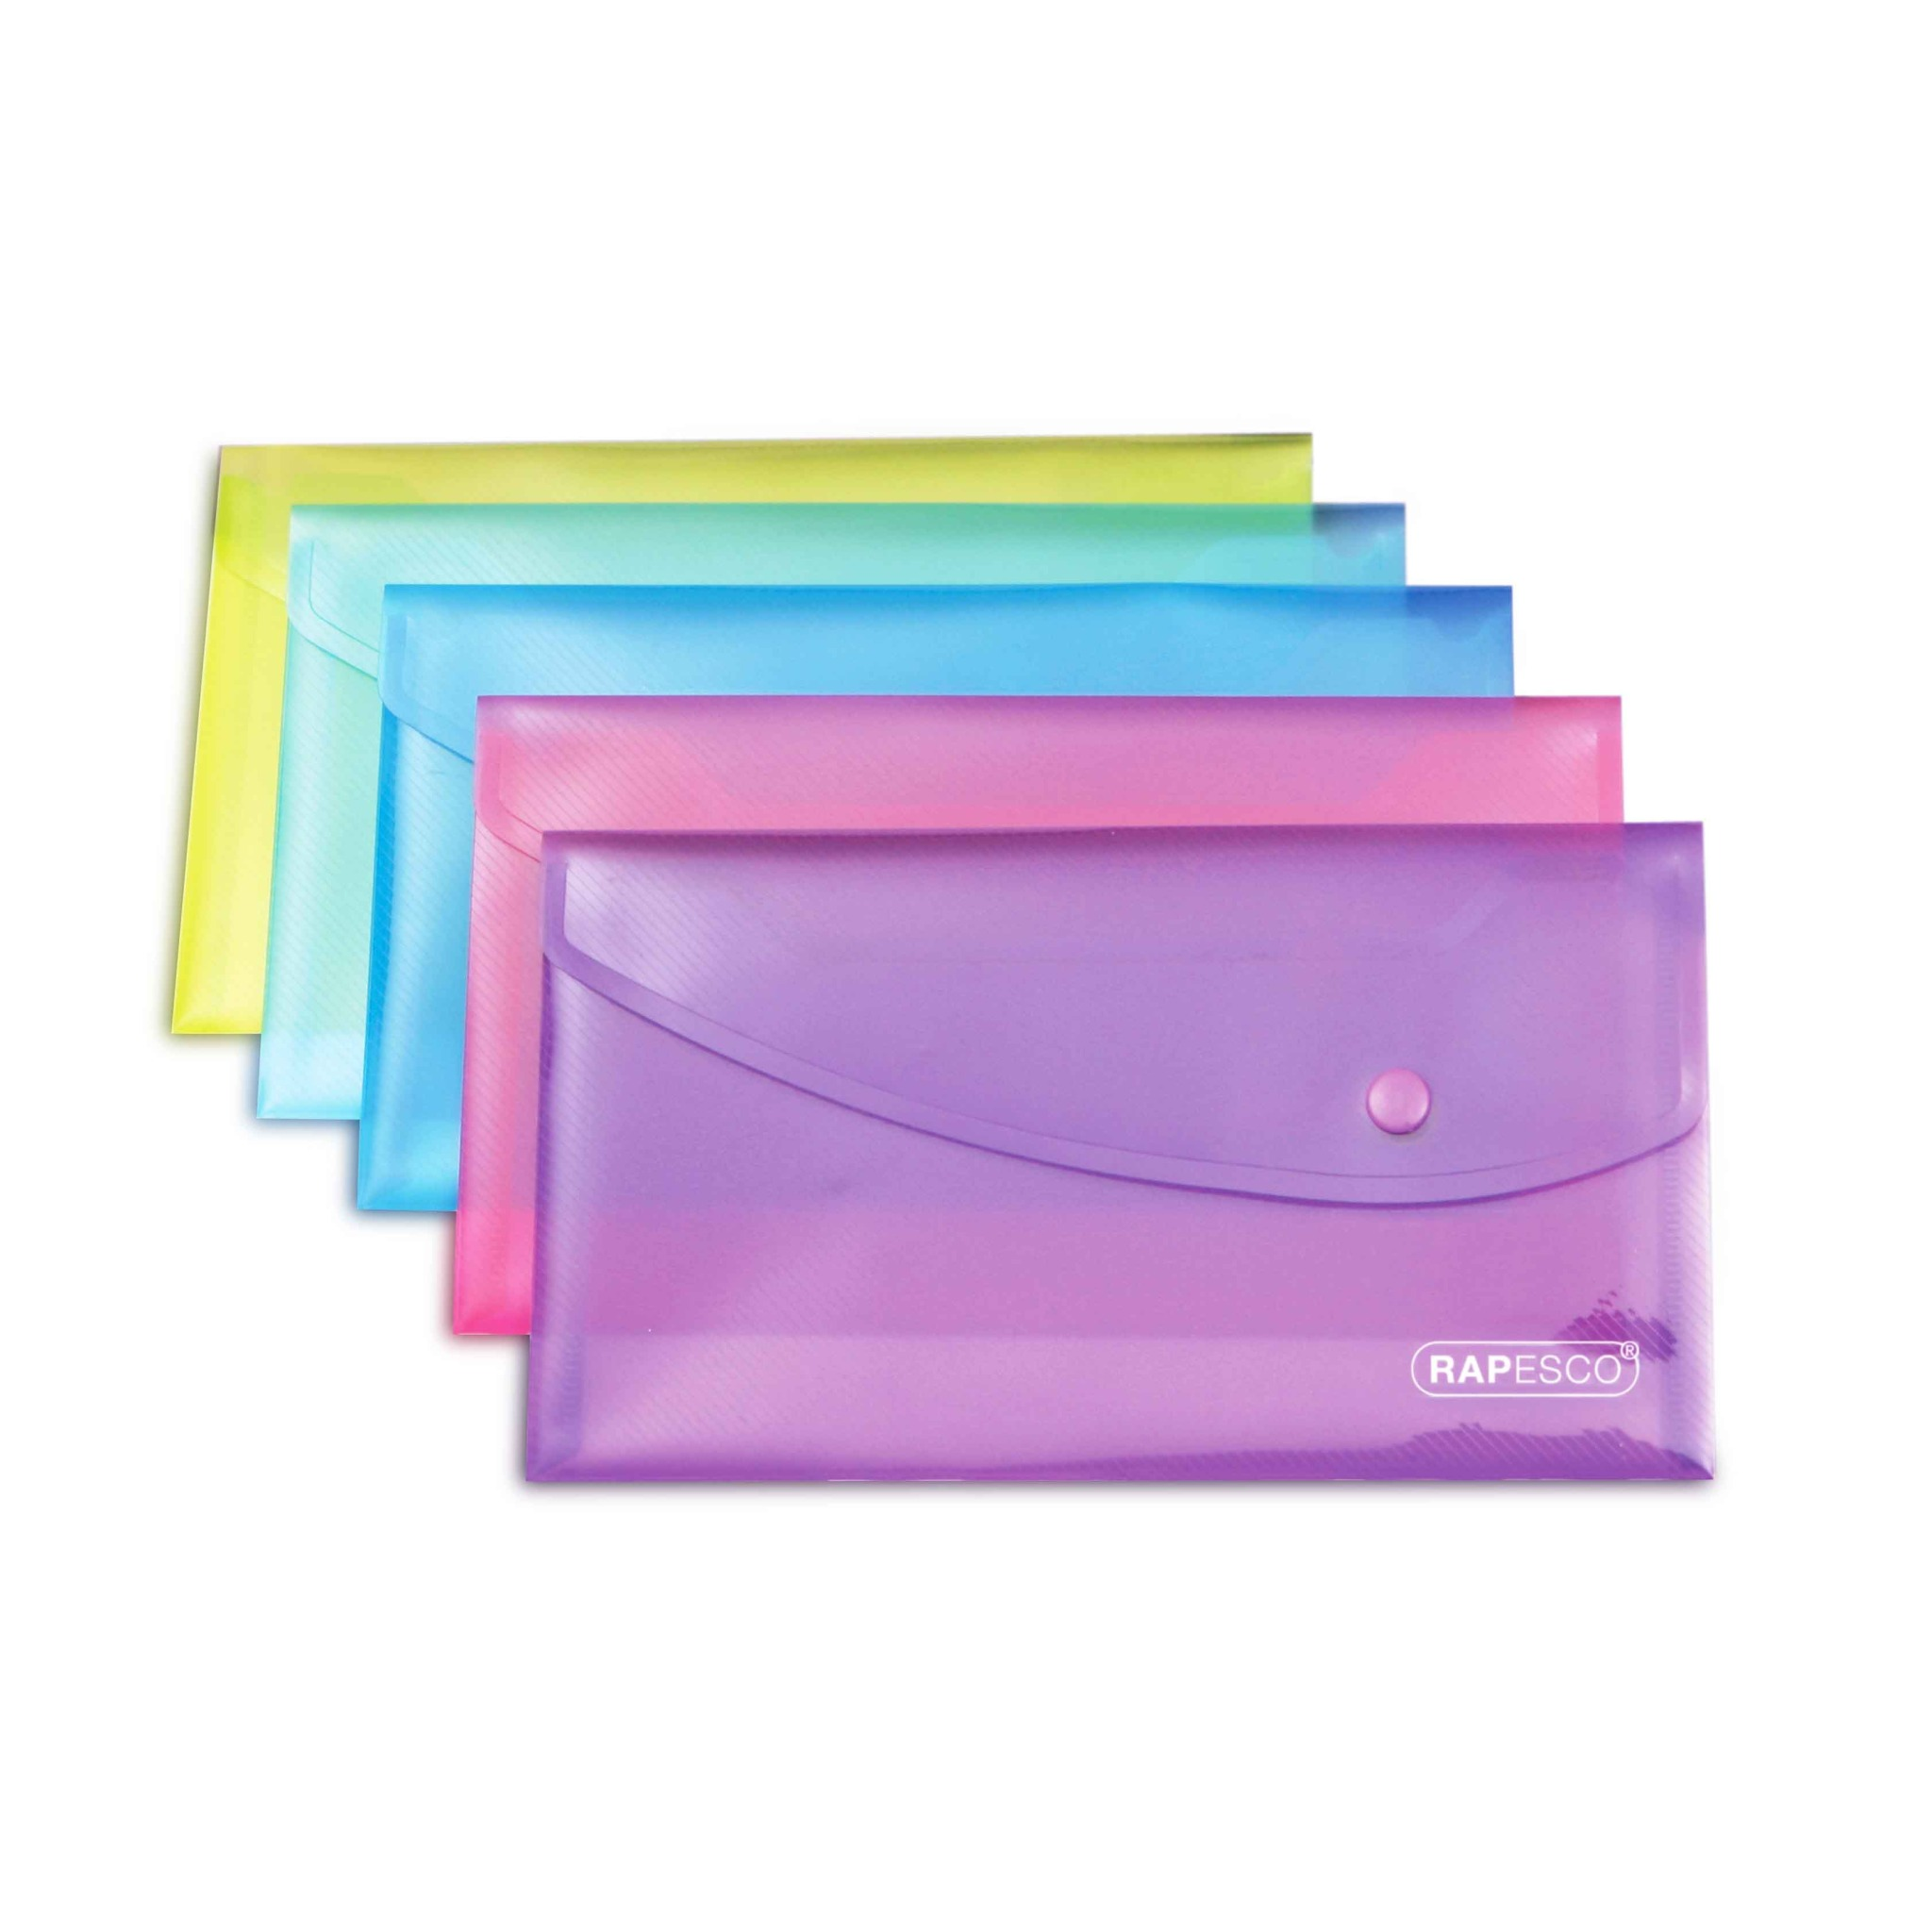 Rapesco Bright Popper Wallet with Button - DL Size (225x125mm) - Assorted